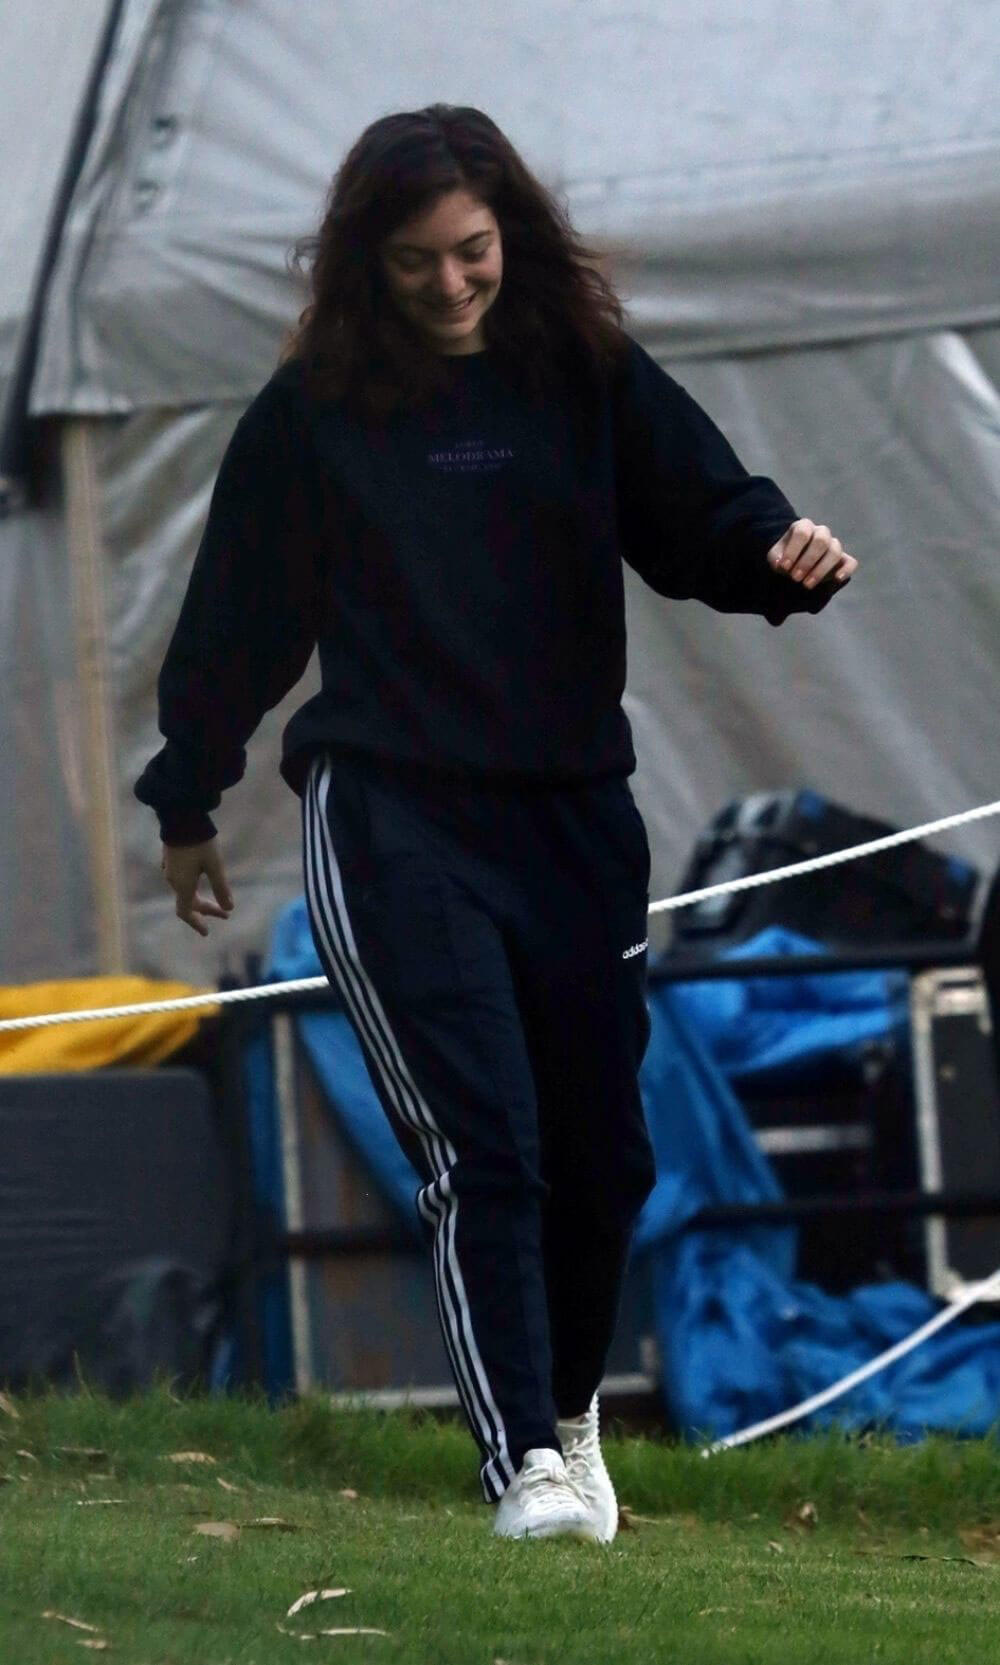 Lorde Stills Arrives at Kings Park Ahead of Her Show in Perth